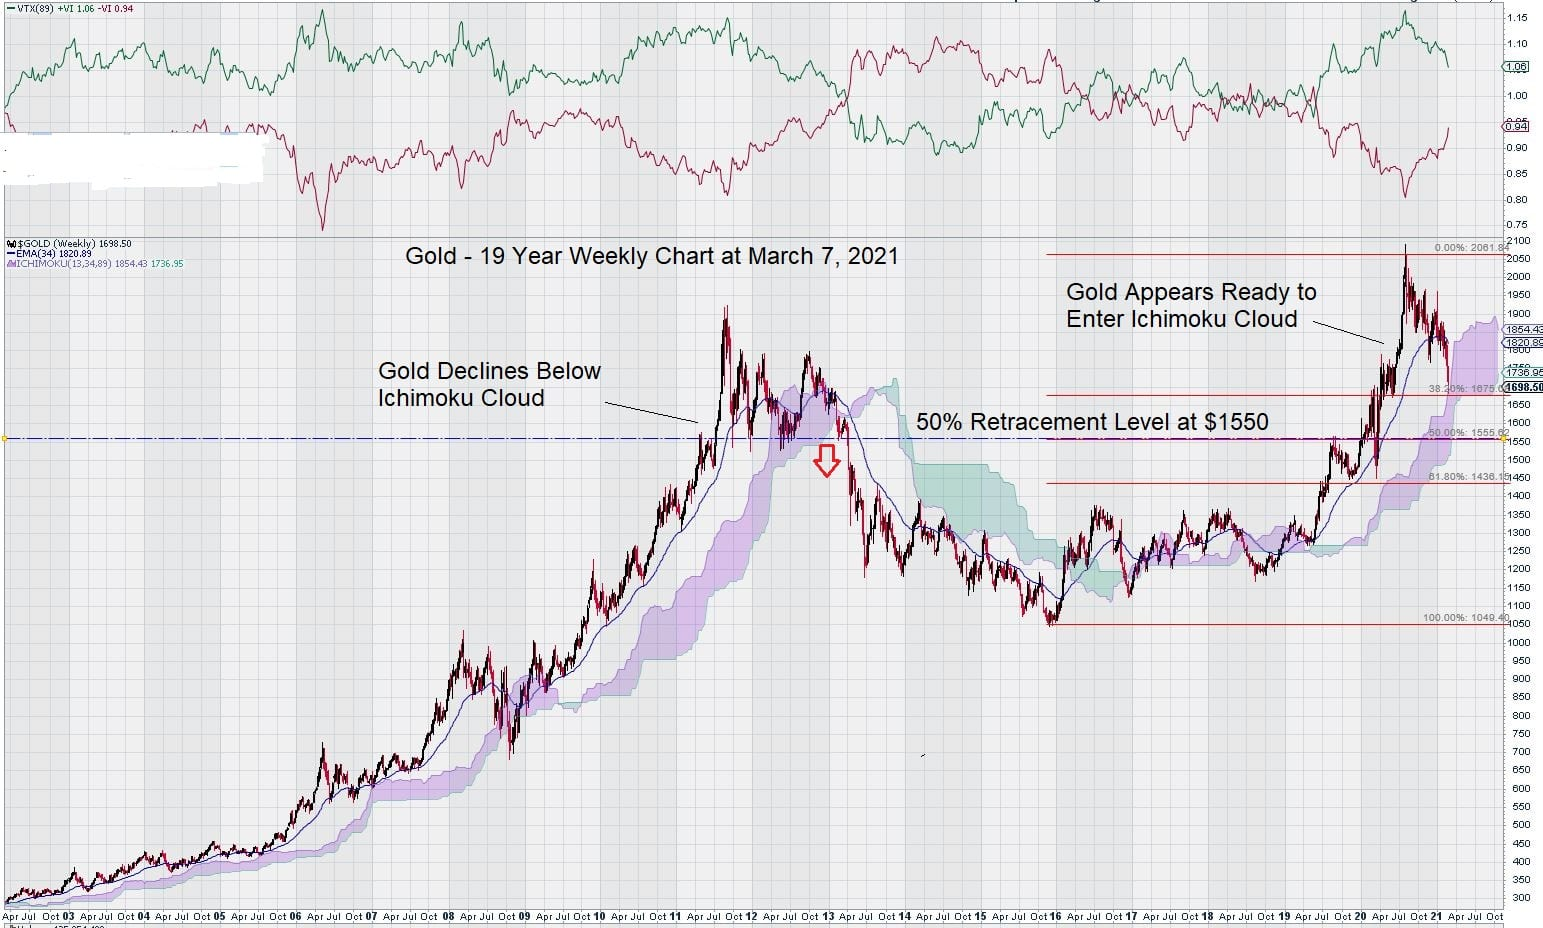 March 7, 2021 gold weekly 19 year chart